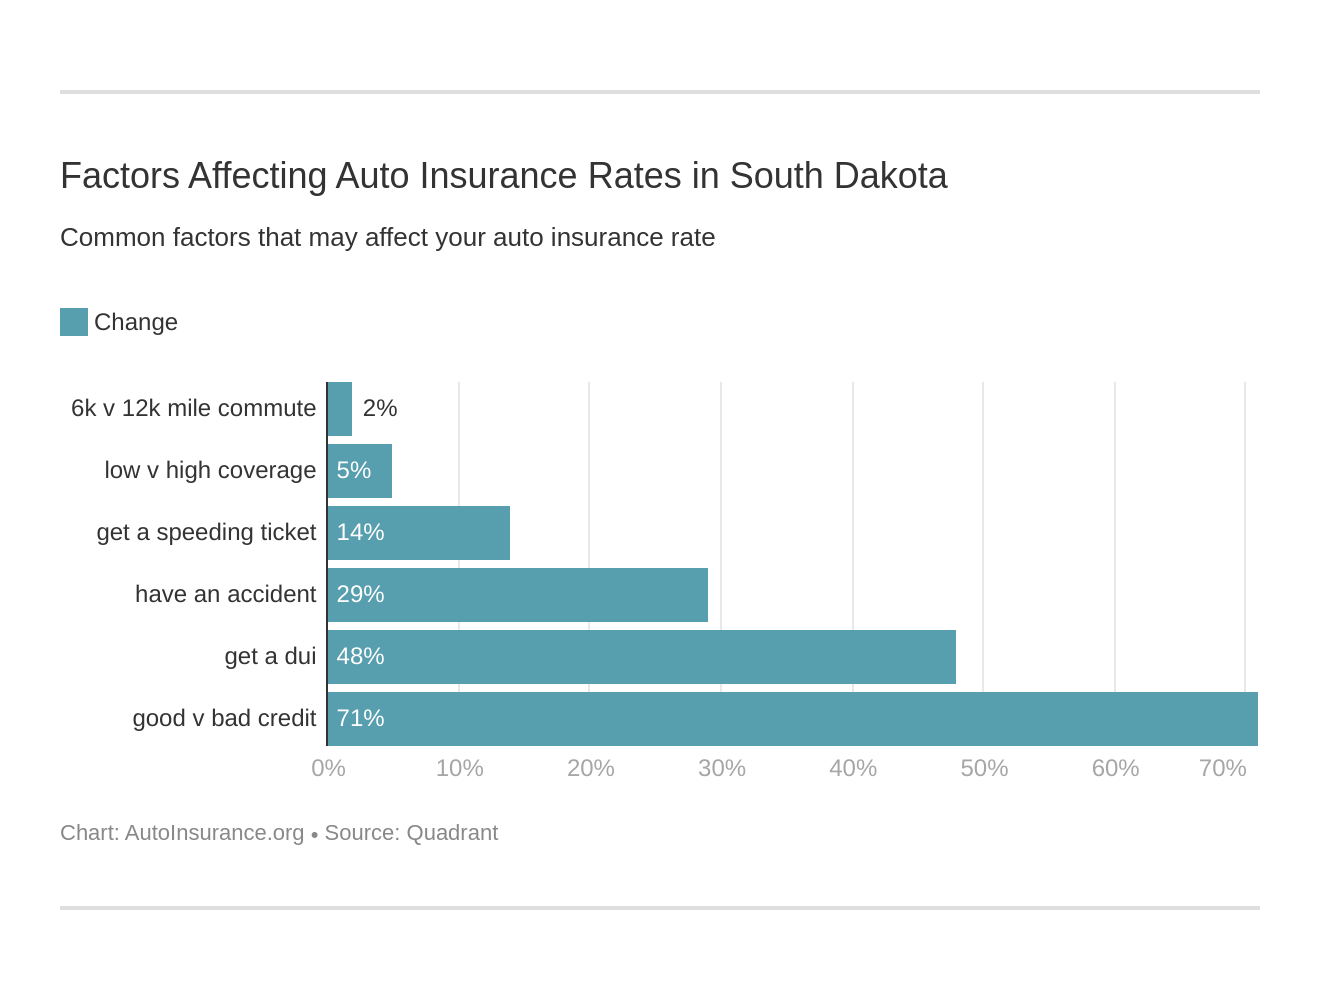 Factors Affecting Auto Insurance Rates in South Dakota